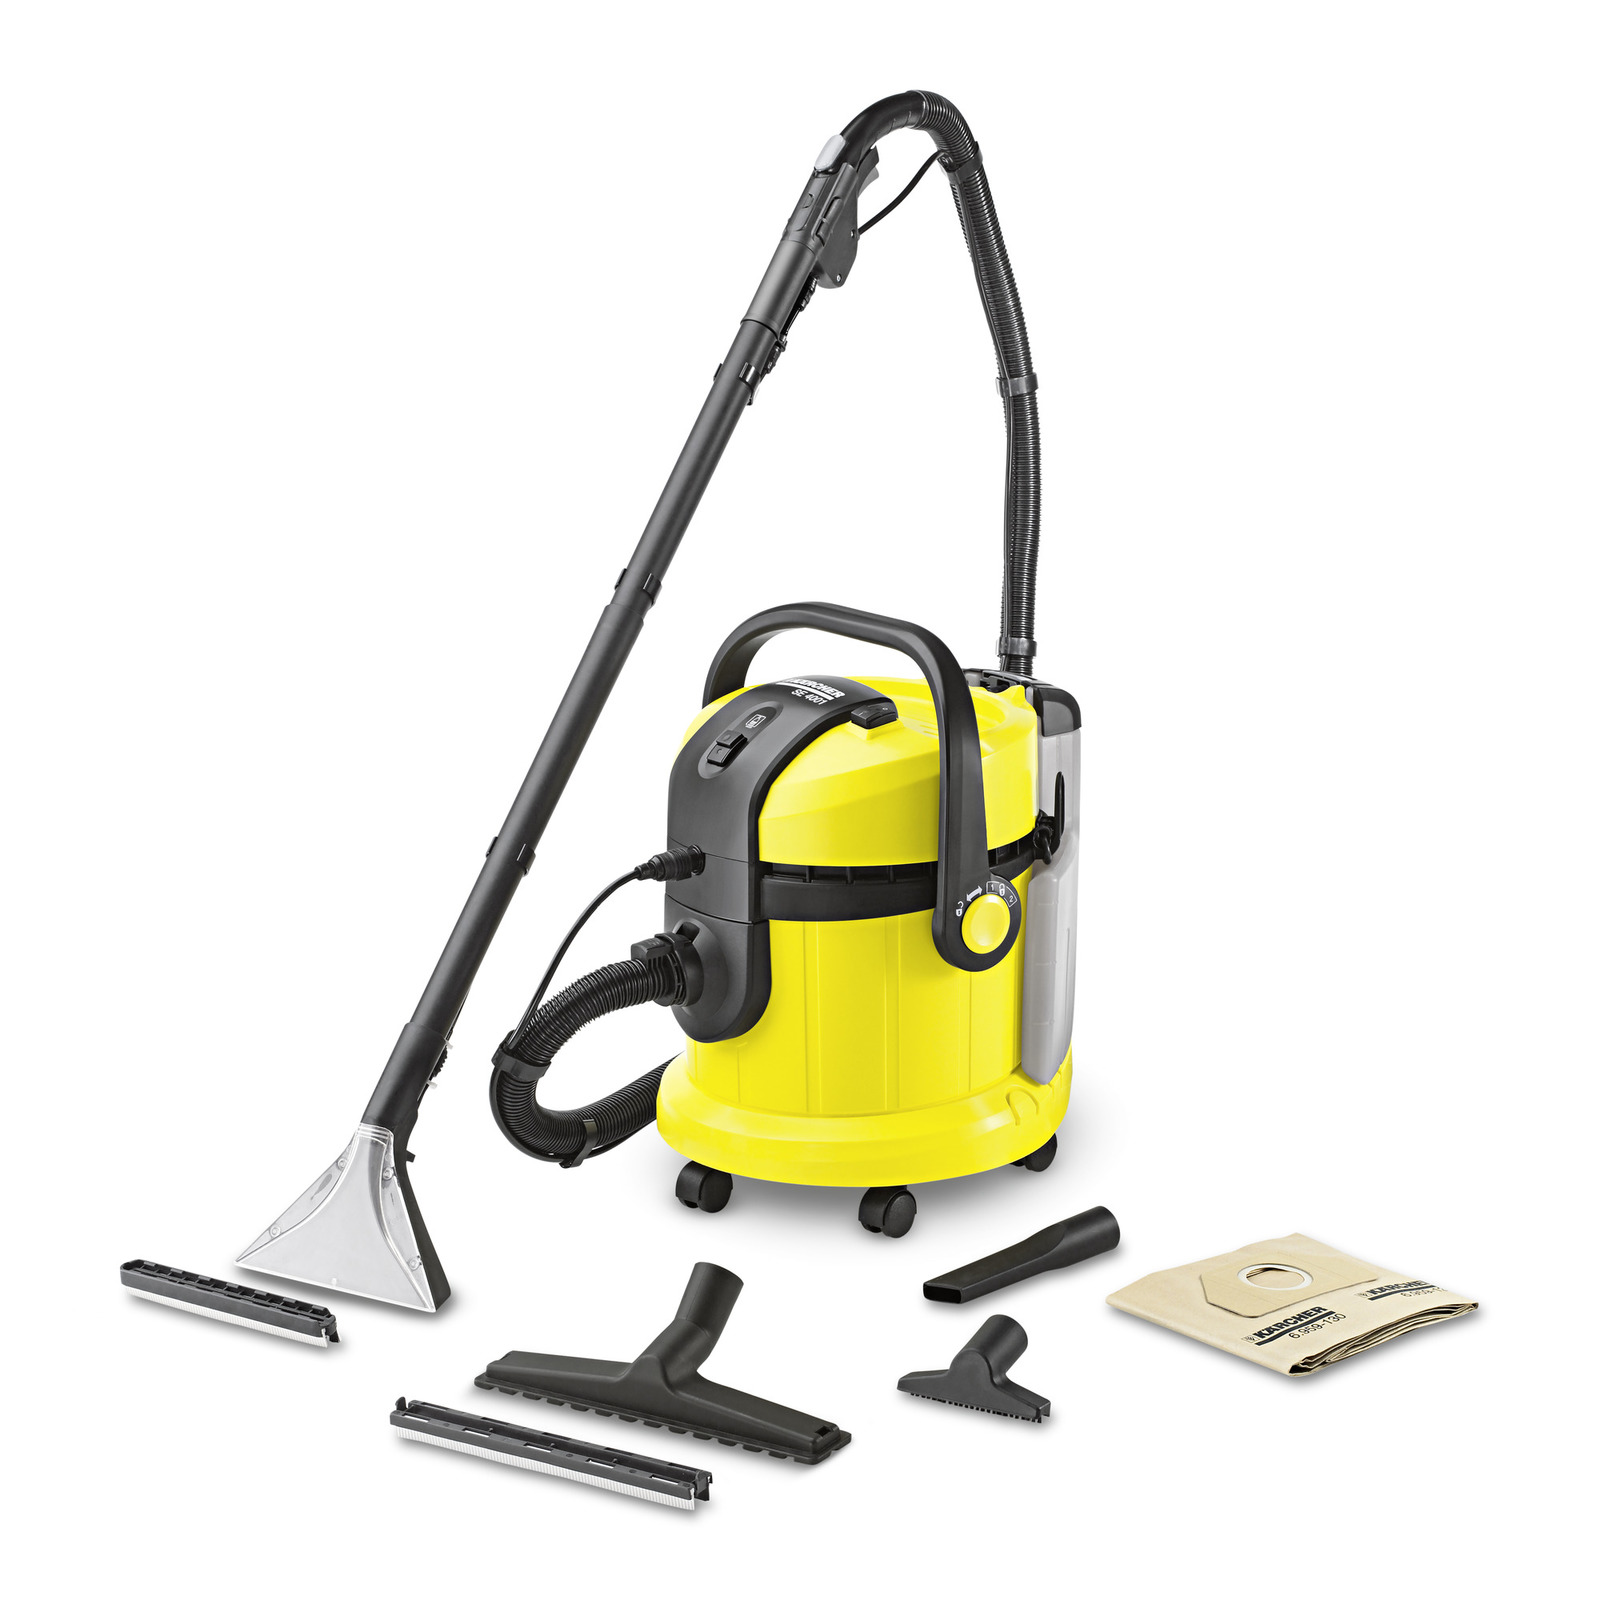 Kärcher Carpet Cleaner SE 4001